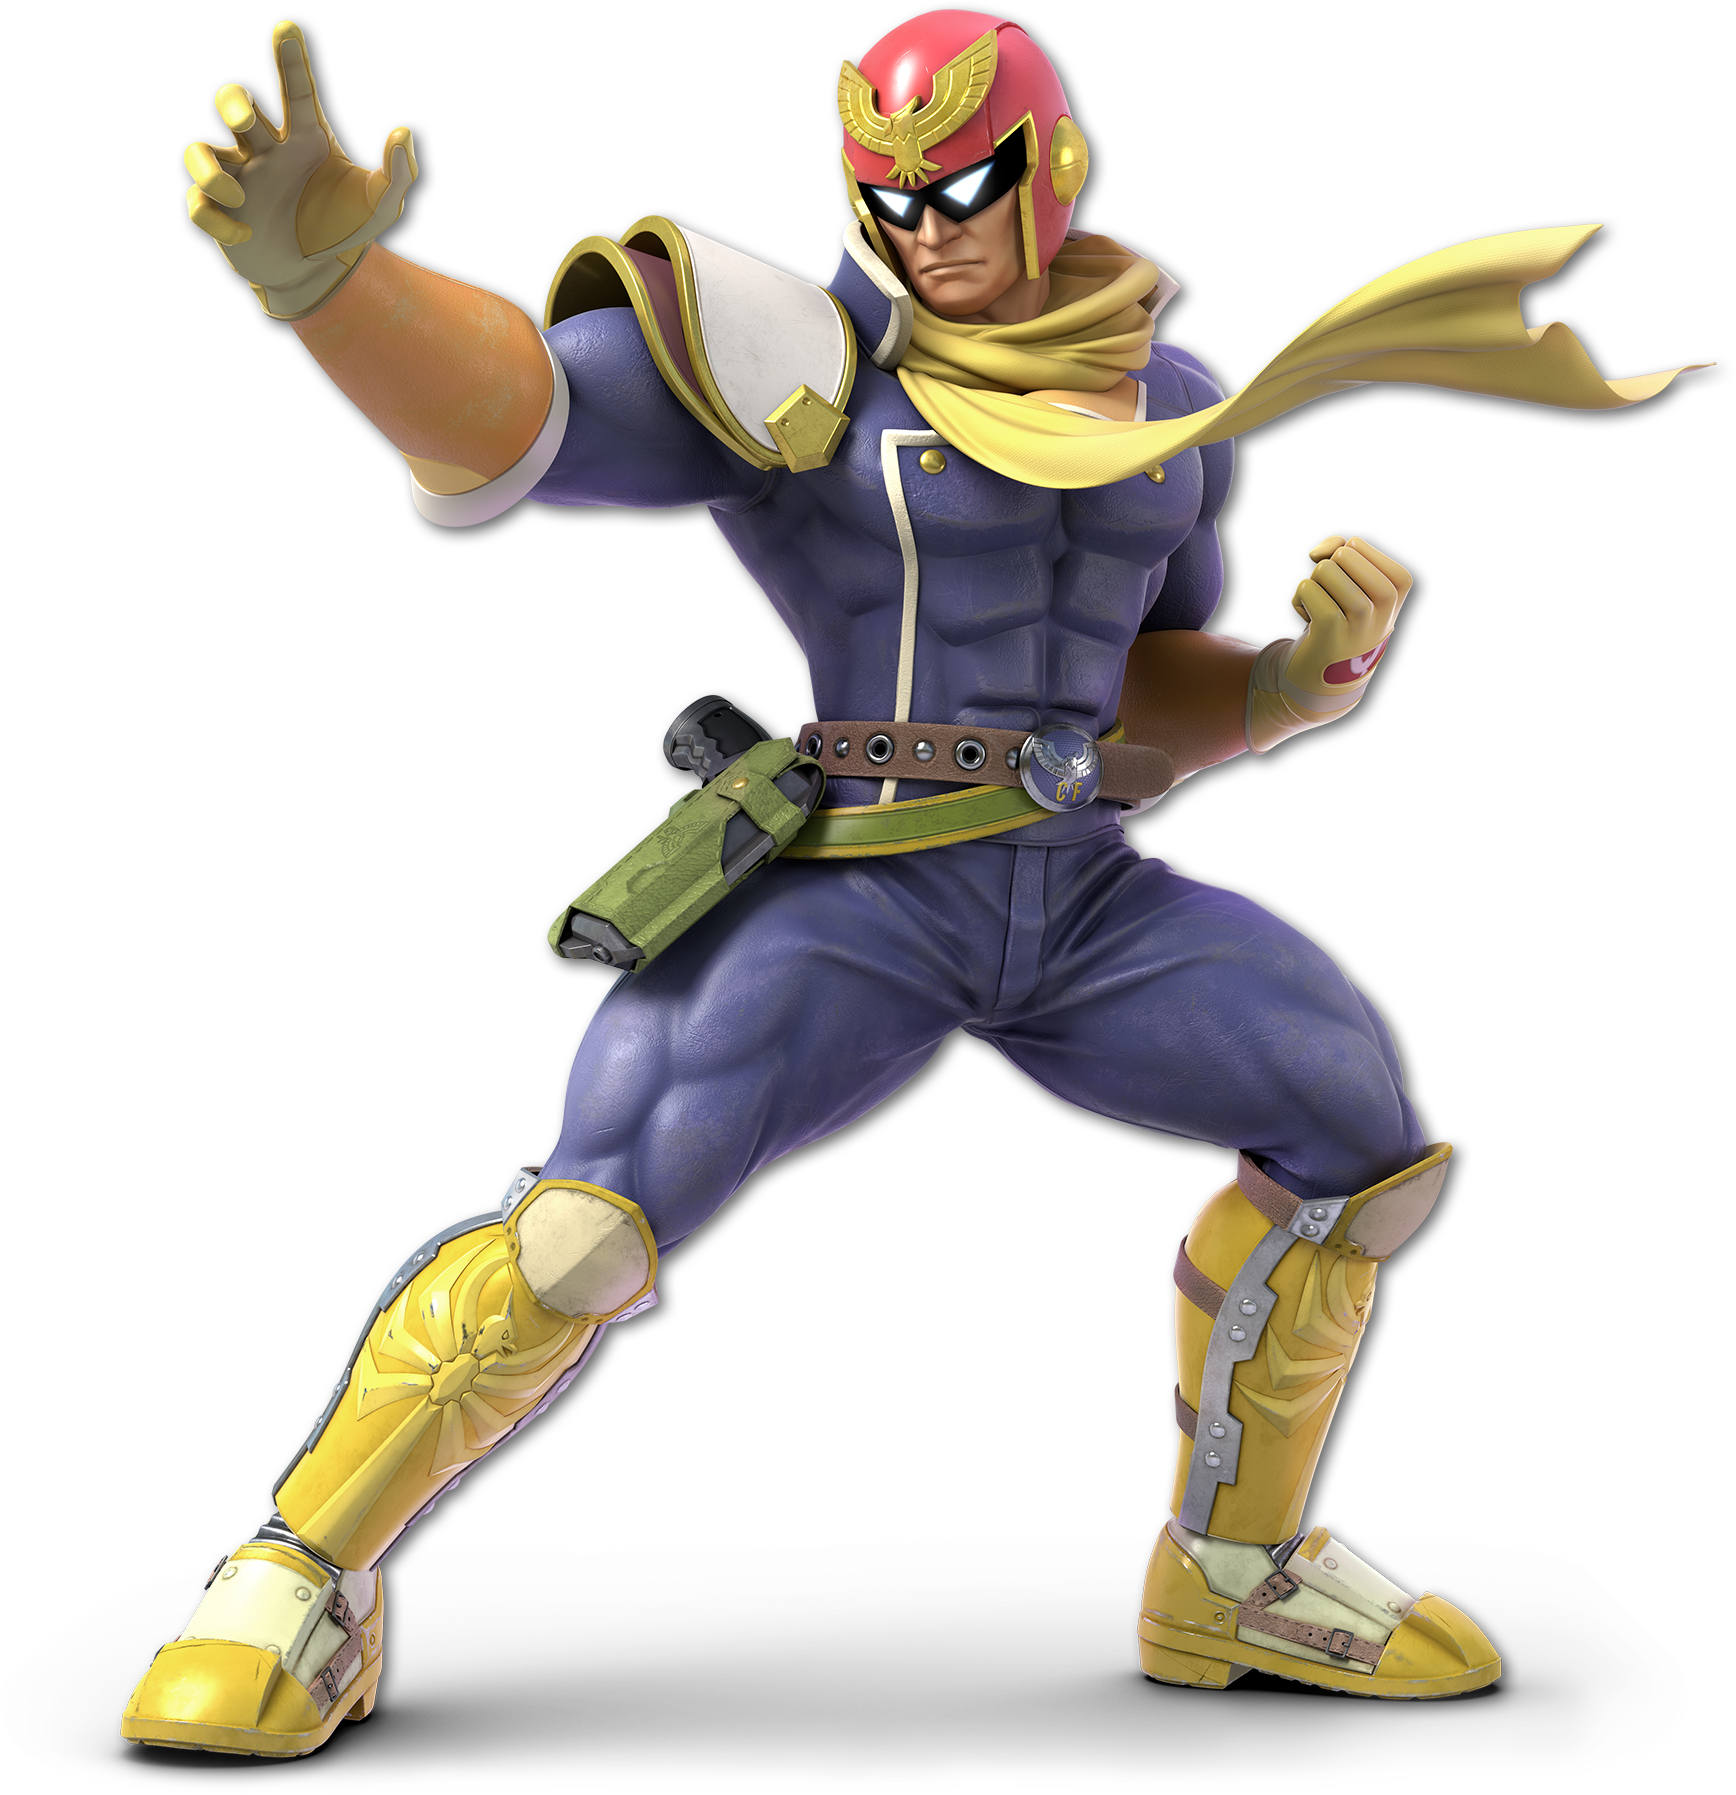 5f2152e8fa2bc9eab46026f38b6271dd - How To Get Captain Falcon In Super Smash Bros Brawl